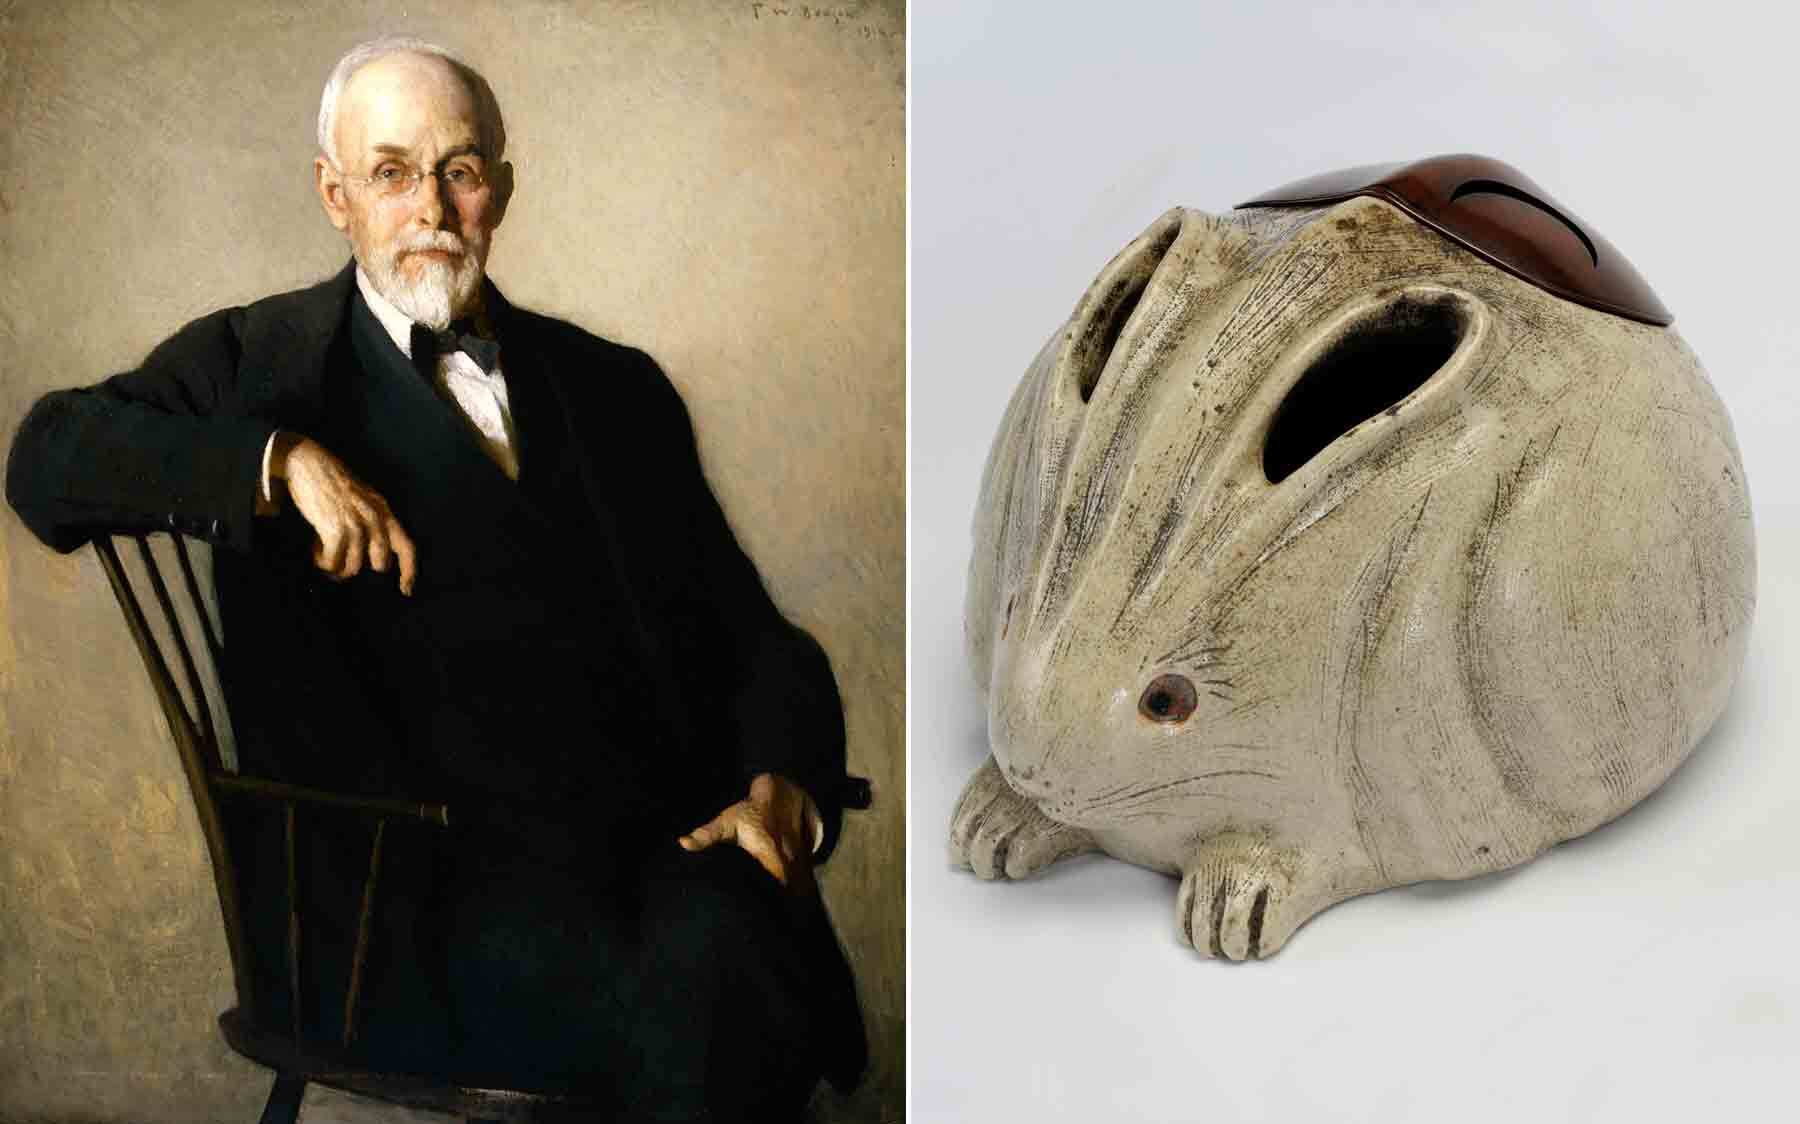 Frank Weston Benson's Portrait of Edward Sylvester Morse, and a brazier in the form of a rabbit, which Morse gifted to the museum in 1900.